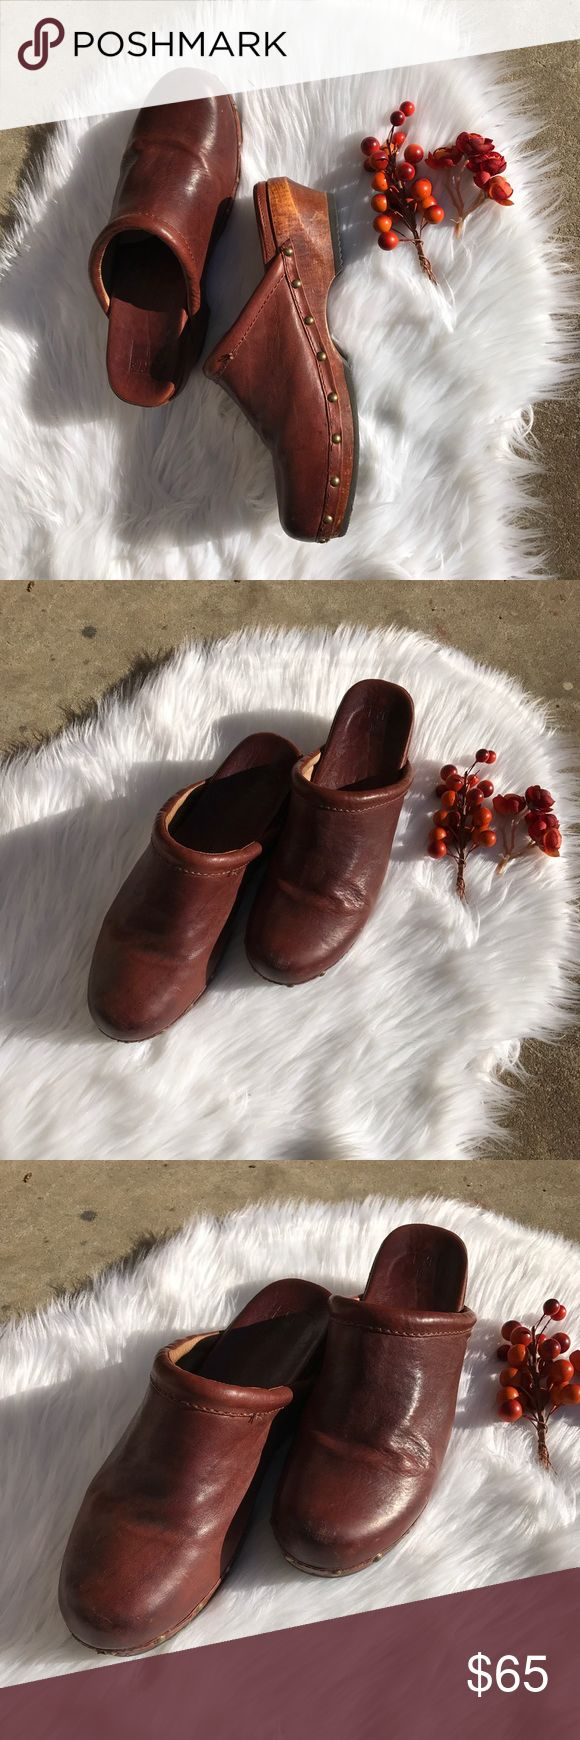 """Frye Cara Campus Brown Leather Clogs Beautiful brown leather clogs by Frye. Studded detail and slip resistant rubber soles. 2"""" heels. Cara Campus Clog style. Frye Shoes Mules & Clogs"""